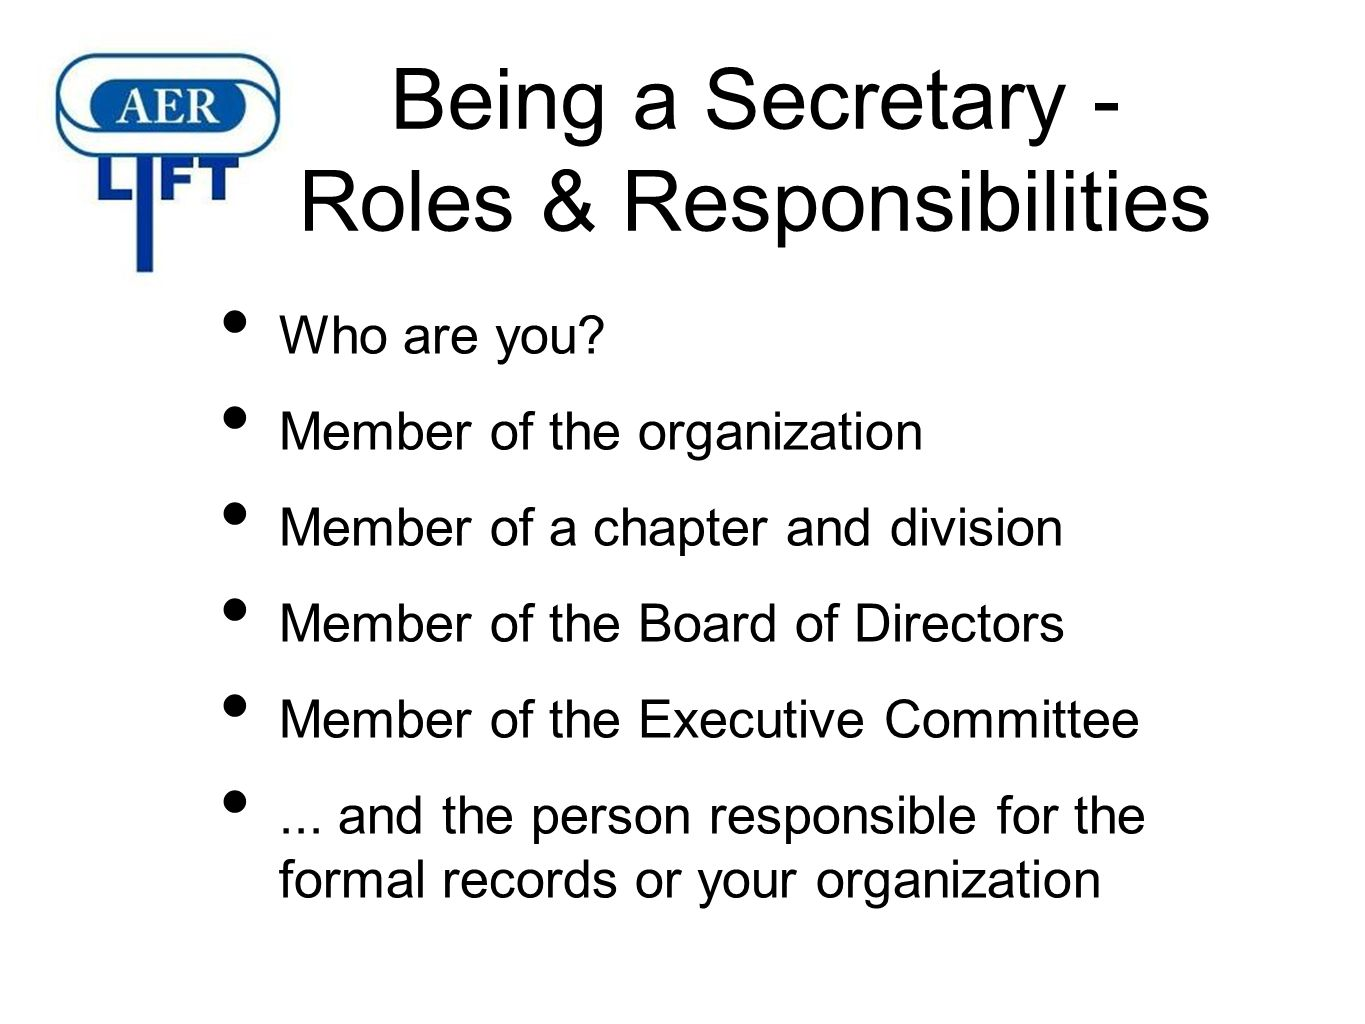 Who is a secretary and what are secretary duties?